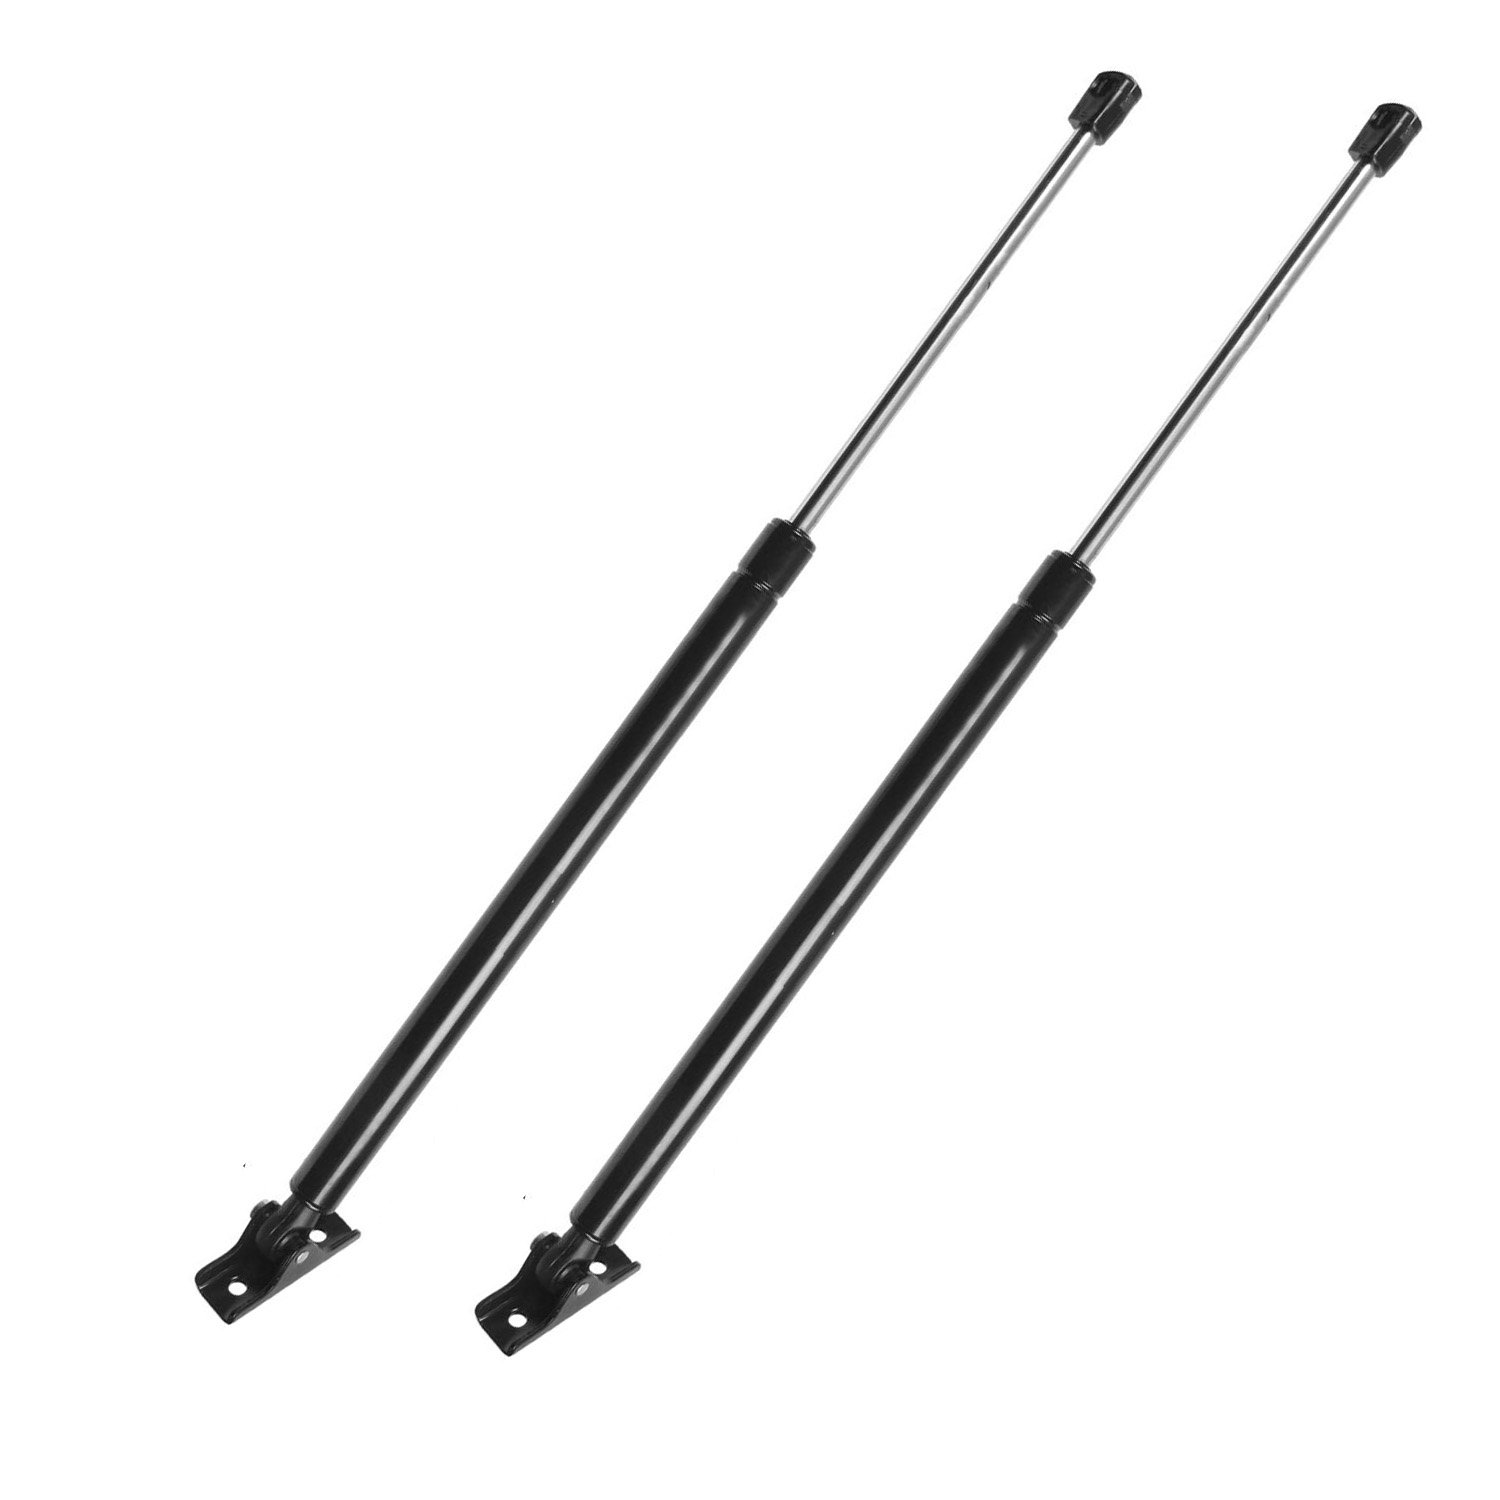 A-Premium Tailgate Rear Trunk Lift Supports Shock Struts for Chrysler 300 2005-2008 Sedan Century Huateng Network Overseas Limited